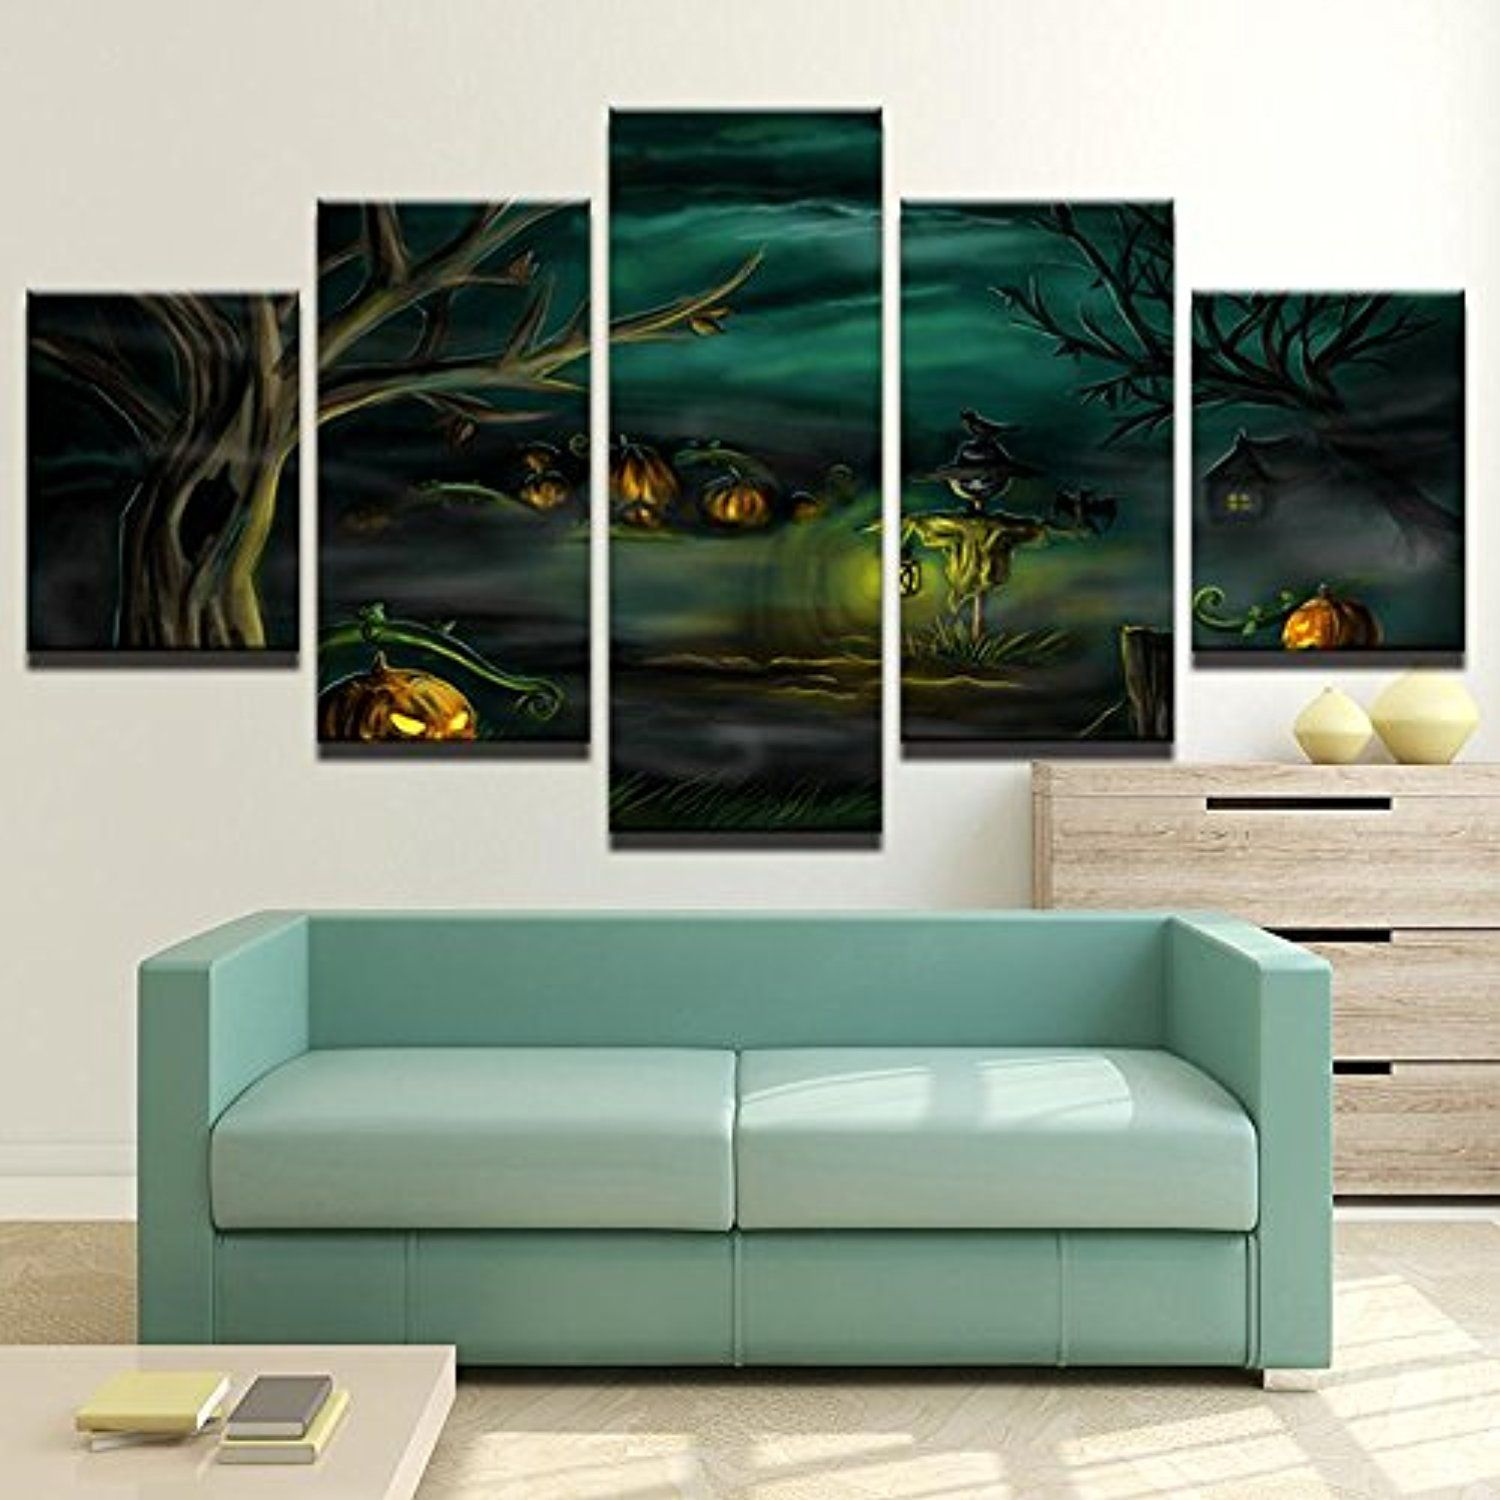 Premium quality canvas printed wall art poster pieces pannel